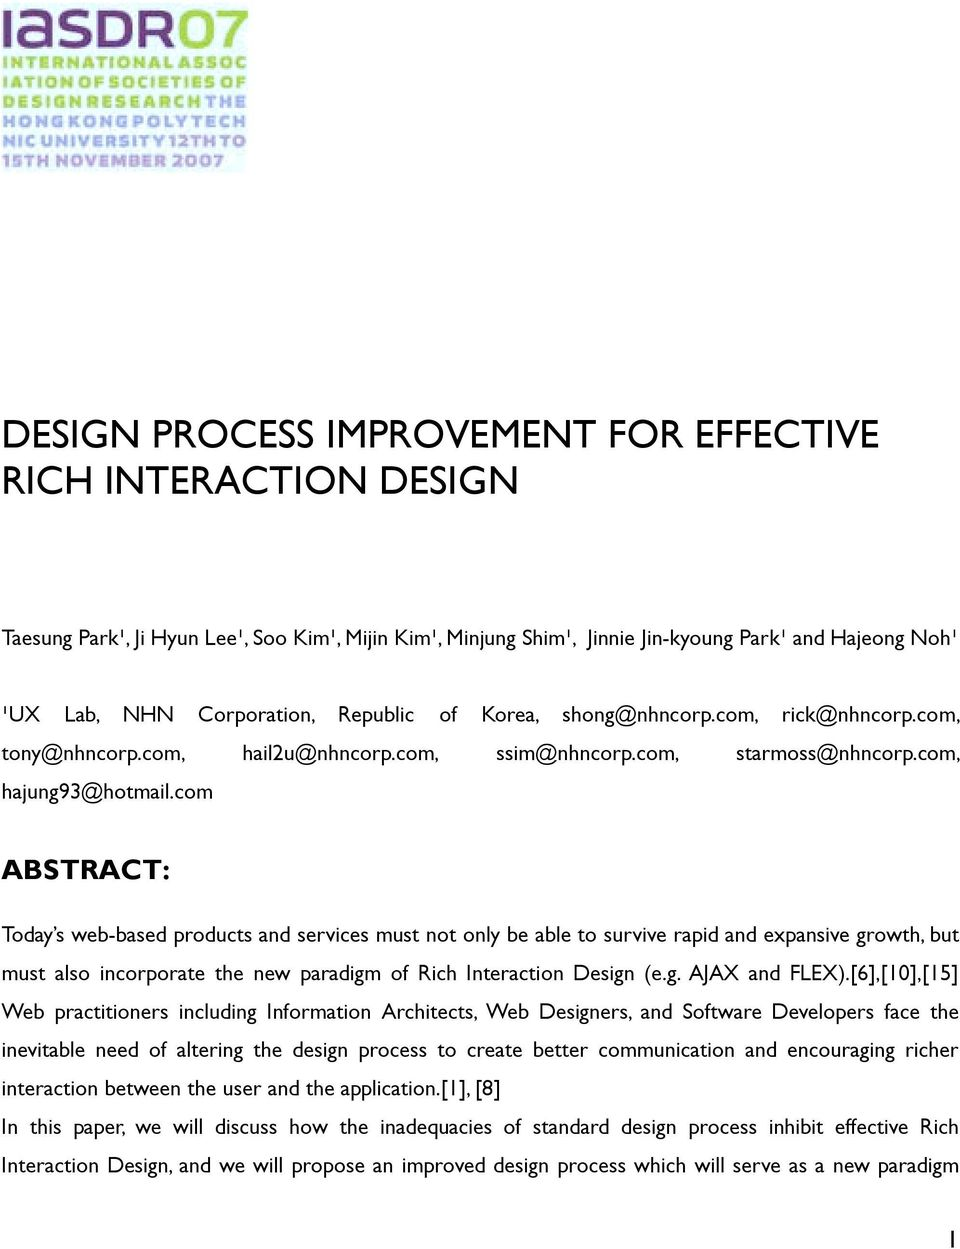 DESIGN PROCESS IMPROVEMENT FOR EFFECTIVE RICH INTERACTION DESIGN - PDF